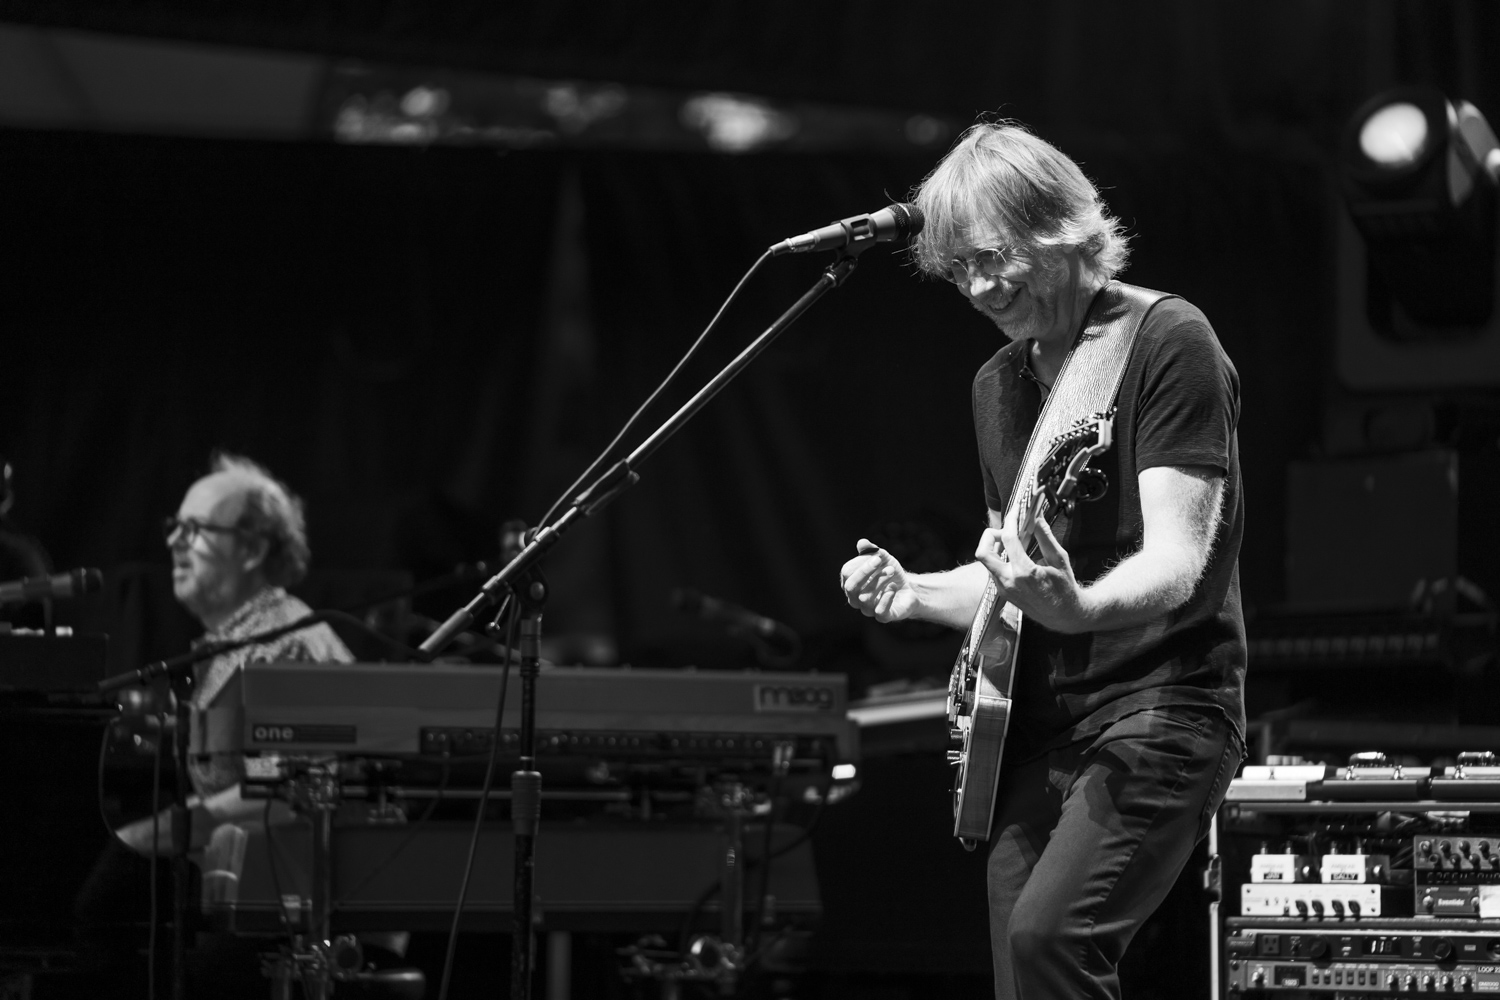 Trey Anastasio and Page McConnell